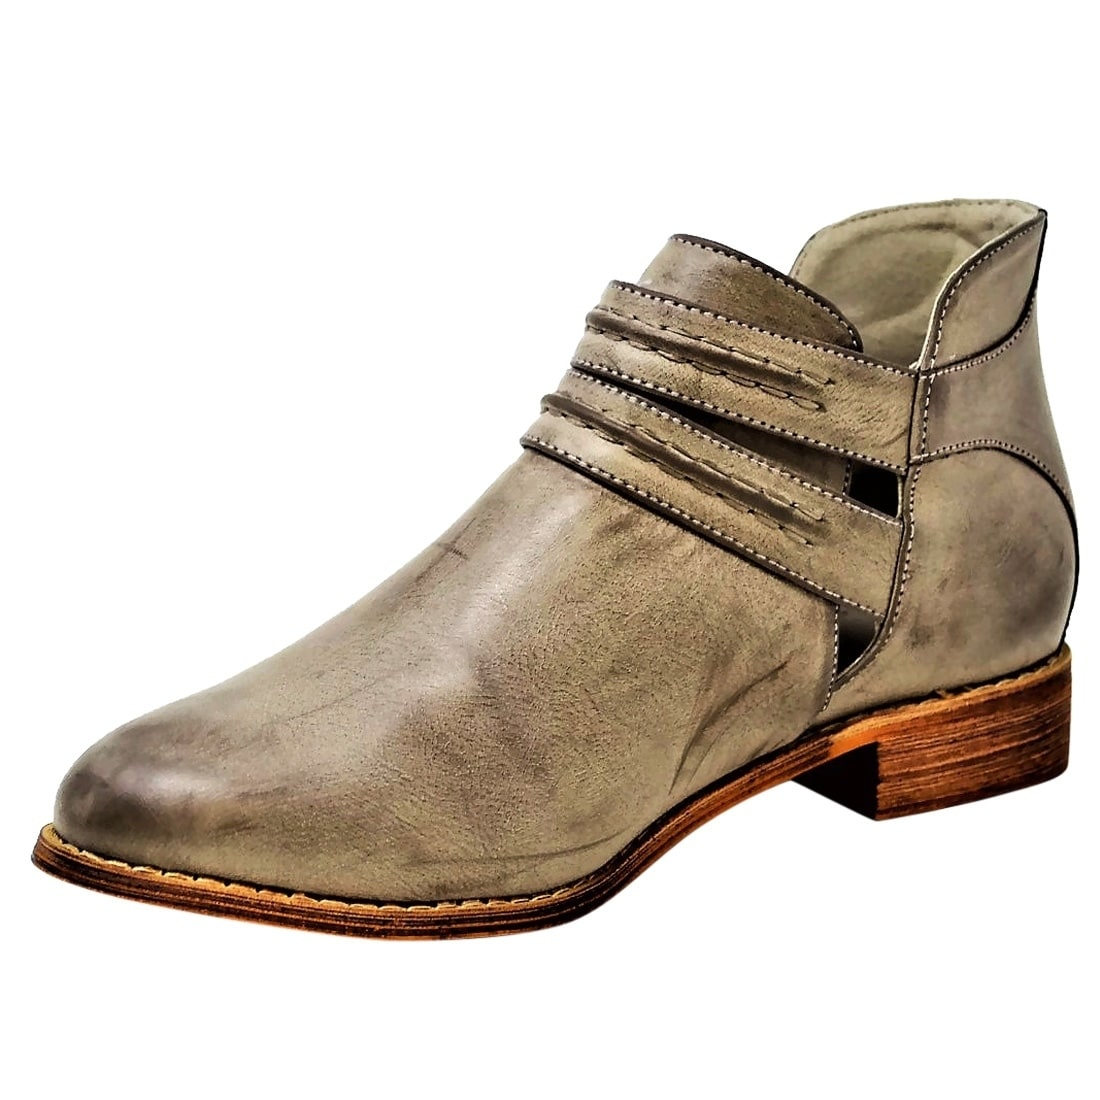 9ef77ecf78cd Shop Mata Shoes FN17 Women s V-cut Ankle Straps Block Low Heel Booties -  Free Shipping On Orders Over  45 - Overstock - 20458801